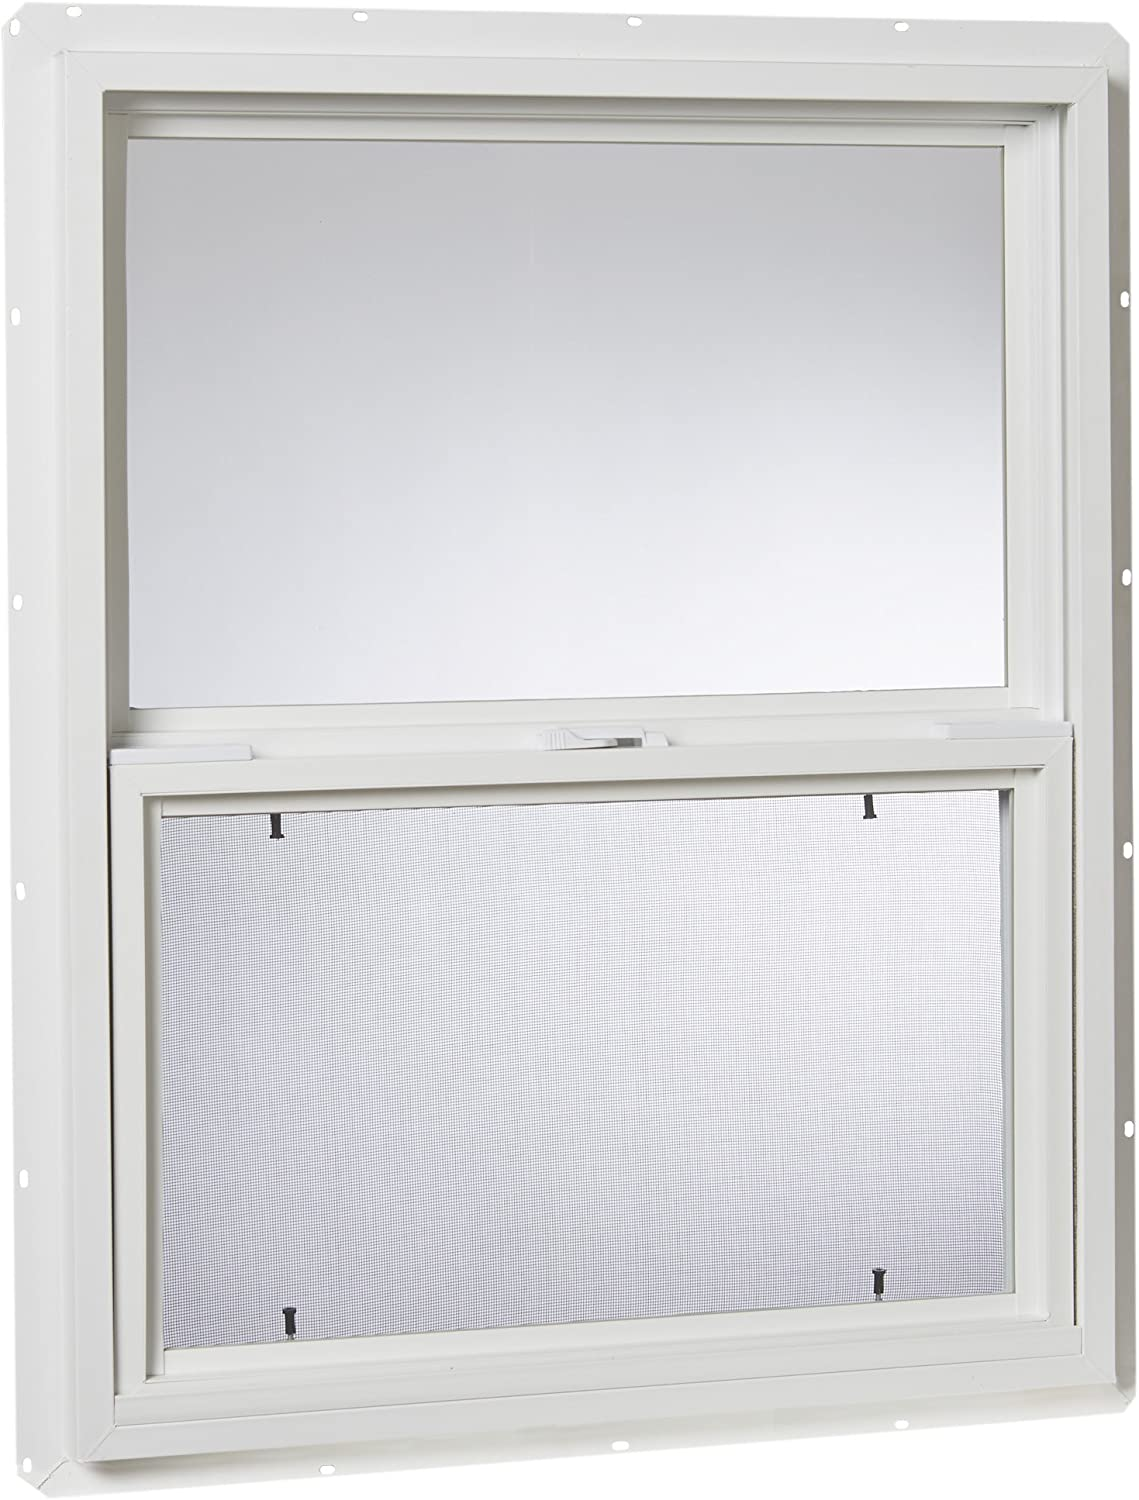 "Park Ridge Products VSH2430PR Park Ridge Glazed Vinyl Hung Window, Single Glass, 24"" X 30"", White"